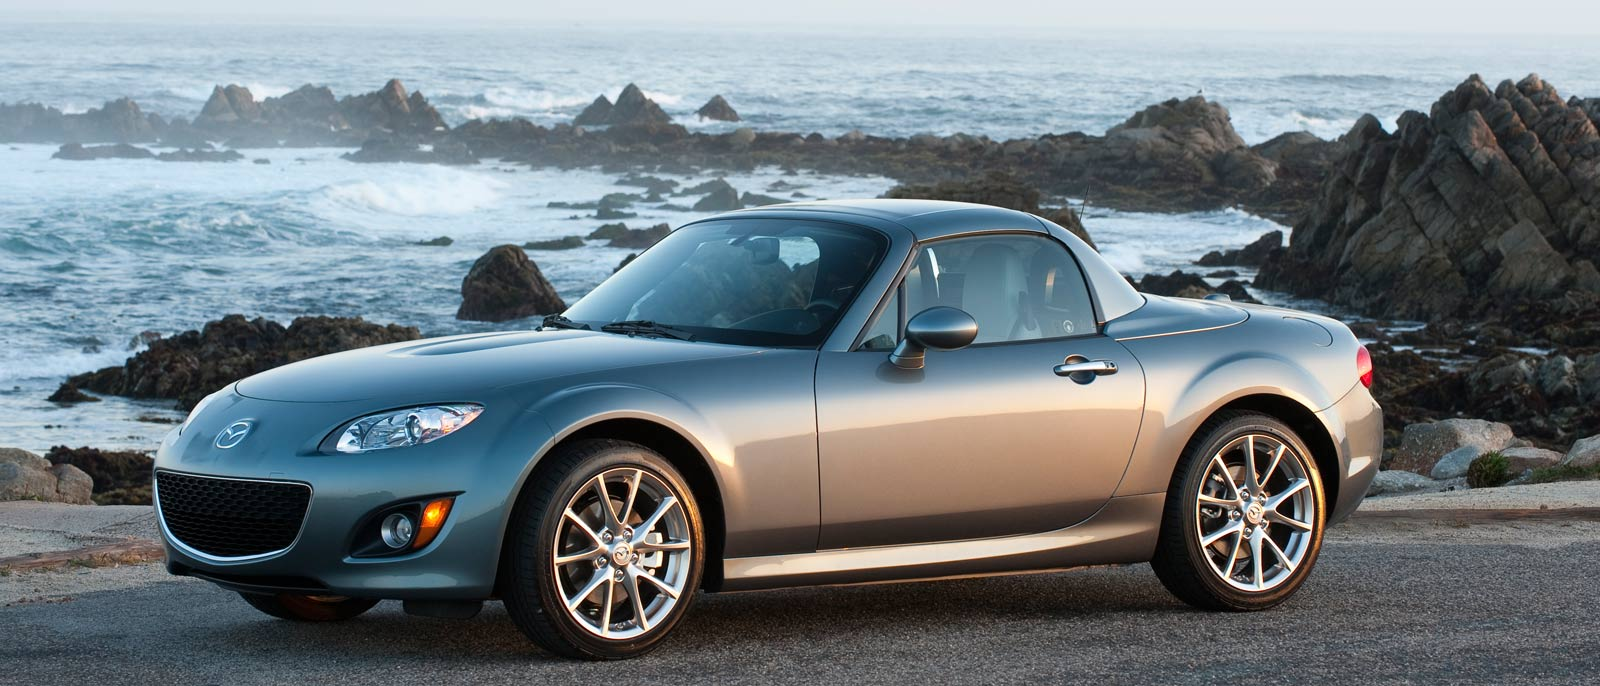 2012 mazda mx 5 miata for sale cargurus autos post. Black Bedroom Furniture Sets. Home Design Ideas